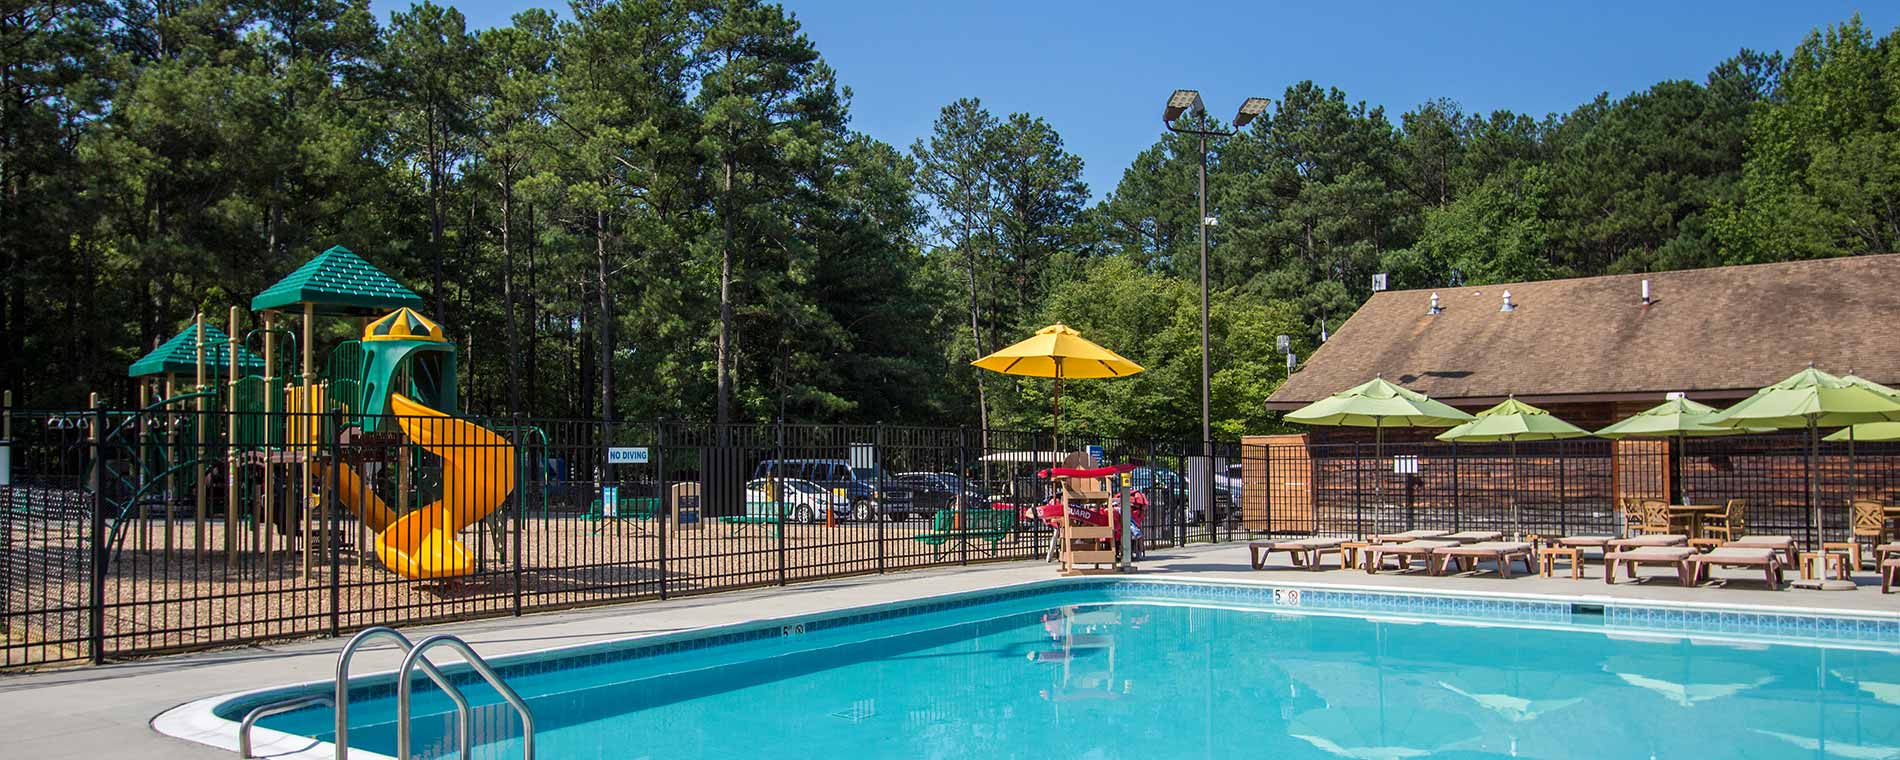 Relaxing Pool & Playground at Kings Dominion KOA in Richmond, VA Camp Site